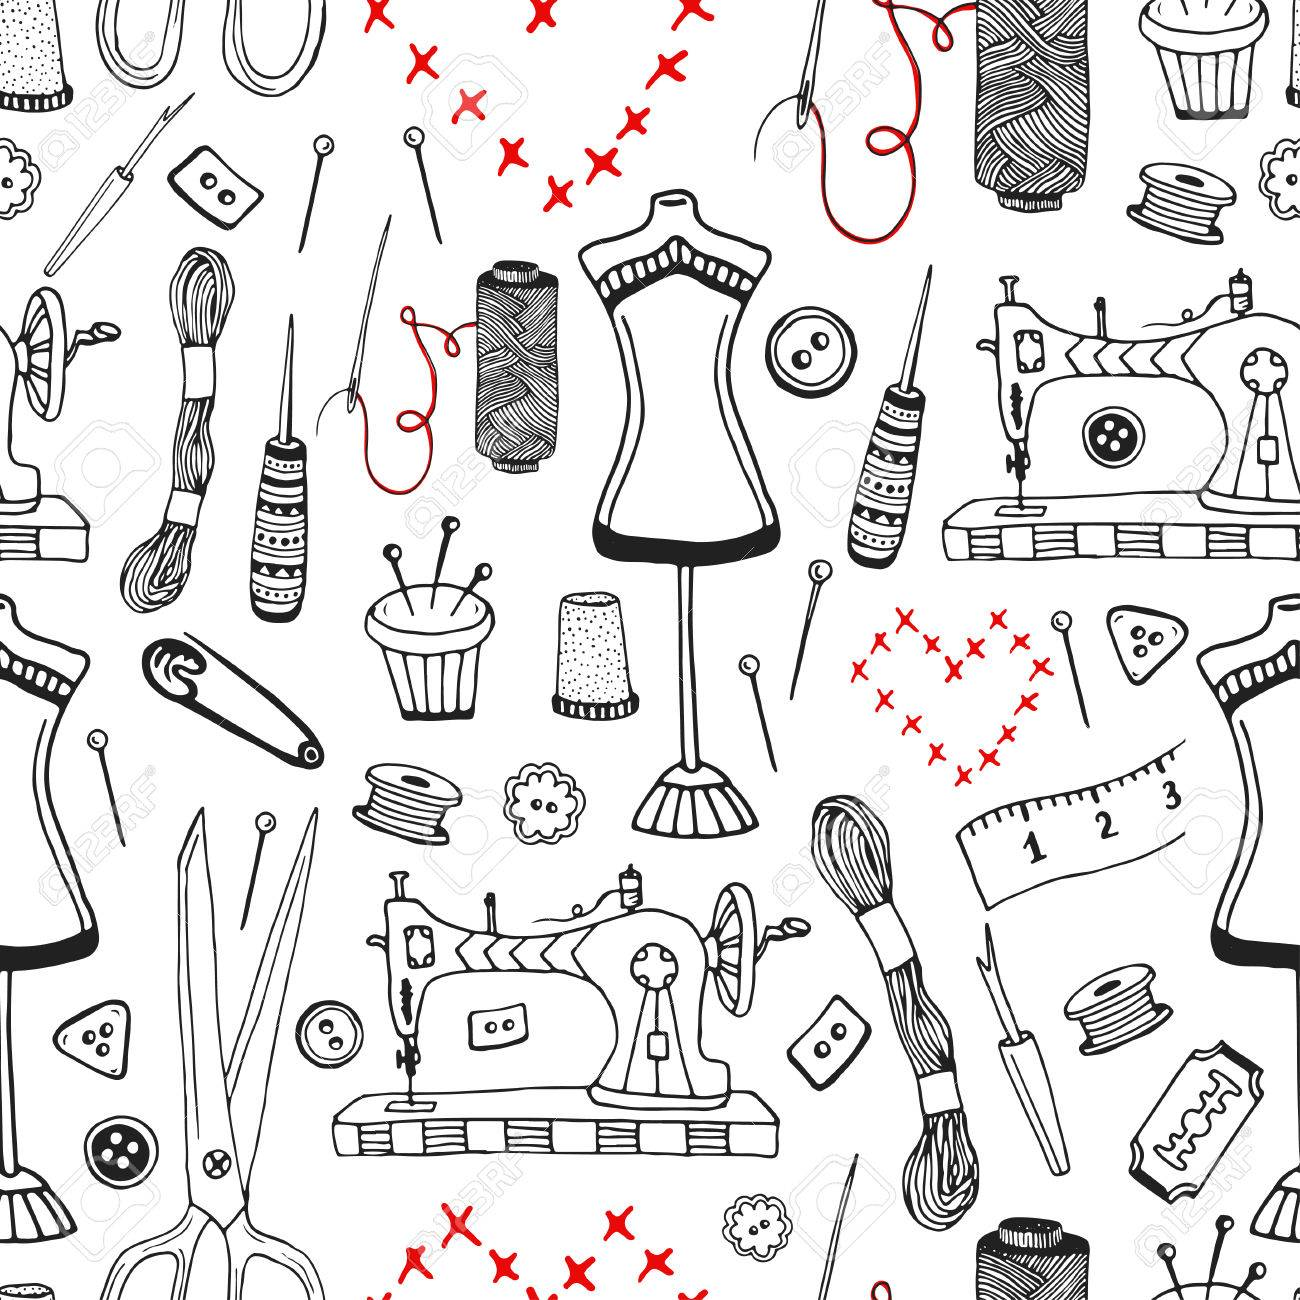 Needlework And Sewing Equipment Seamless Pattern Vector Hand Drawn Craft Supplies Print Stock